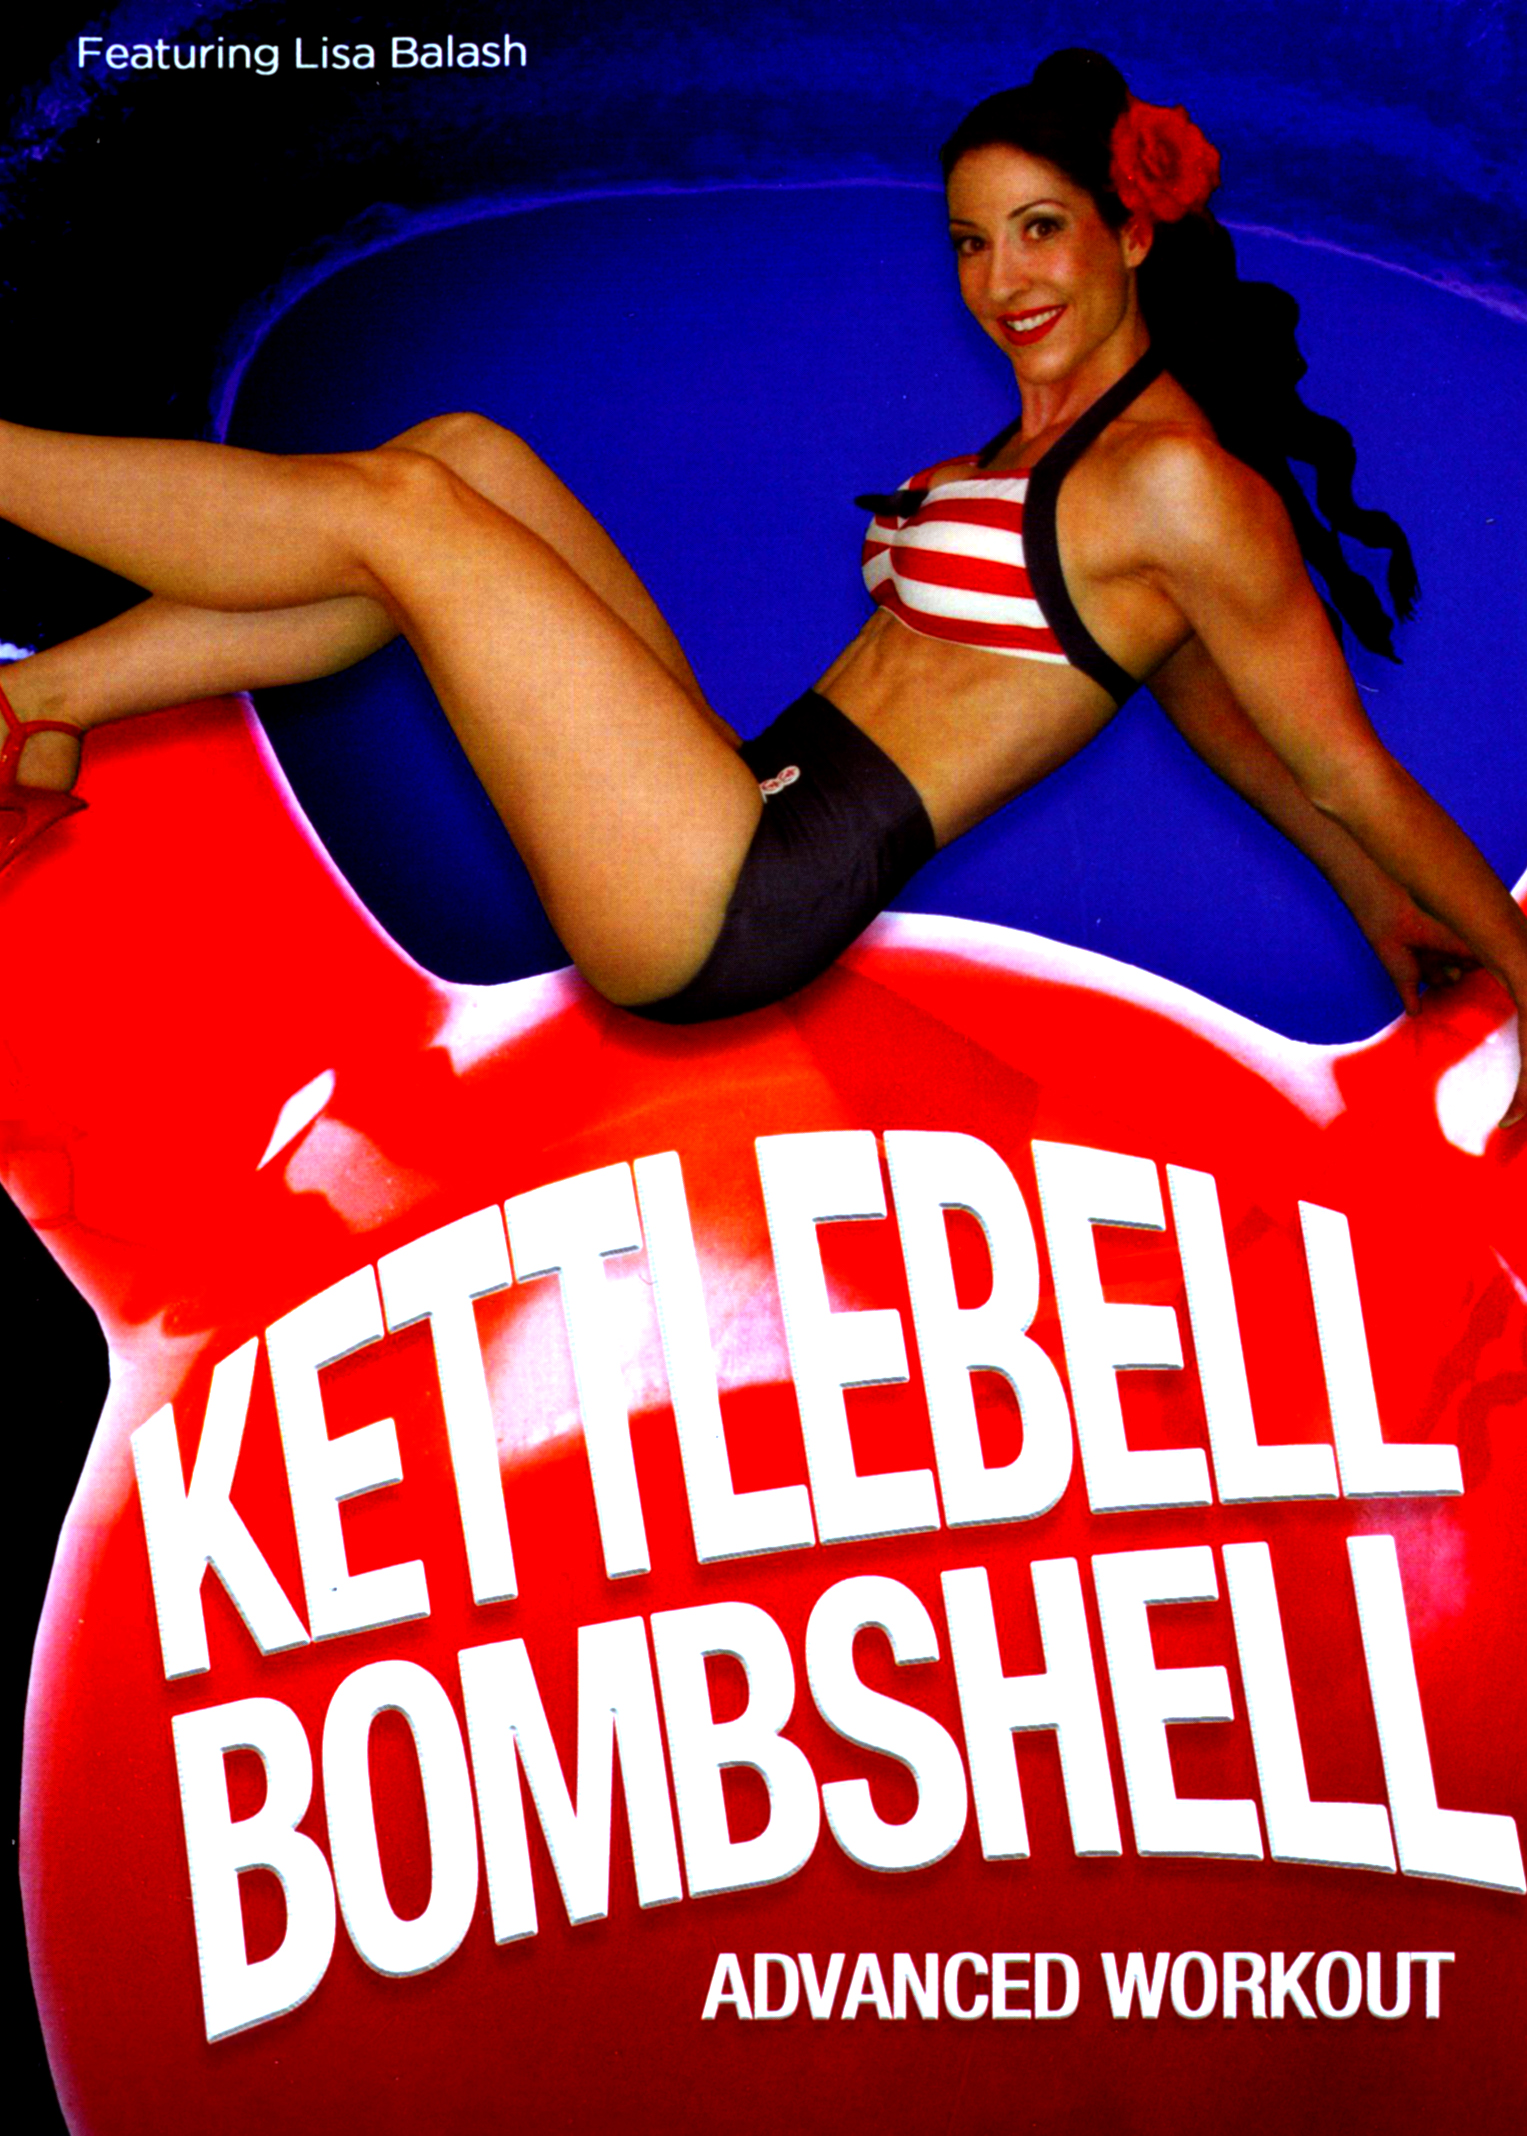 Kettlebell Bombshell: Advanced Workout